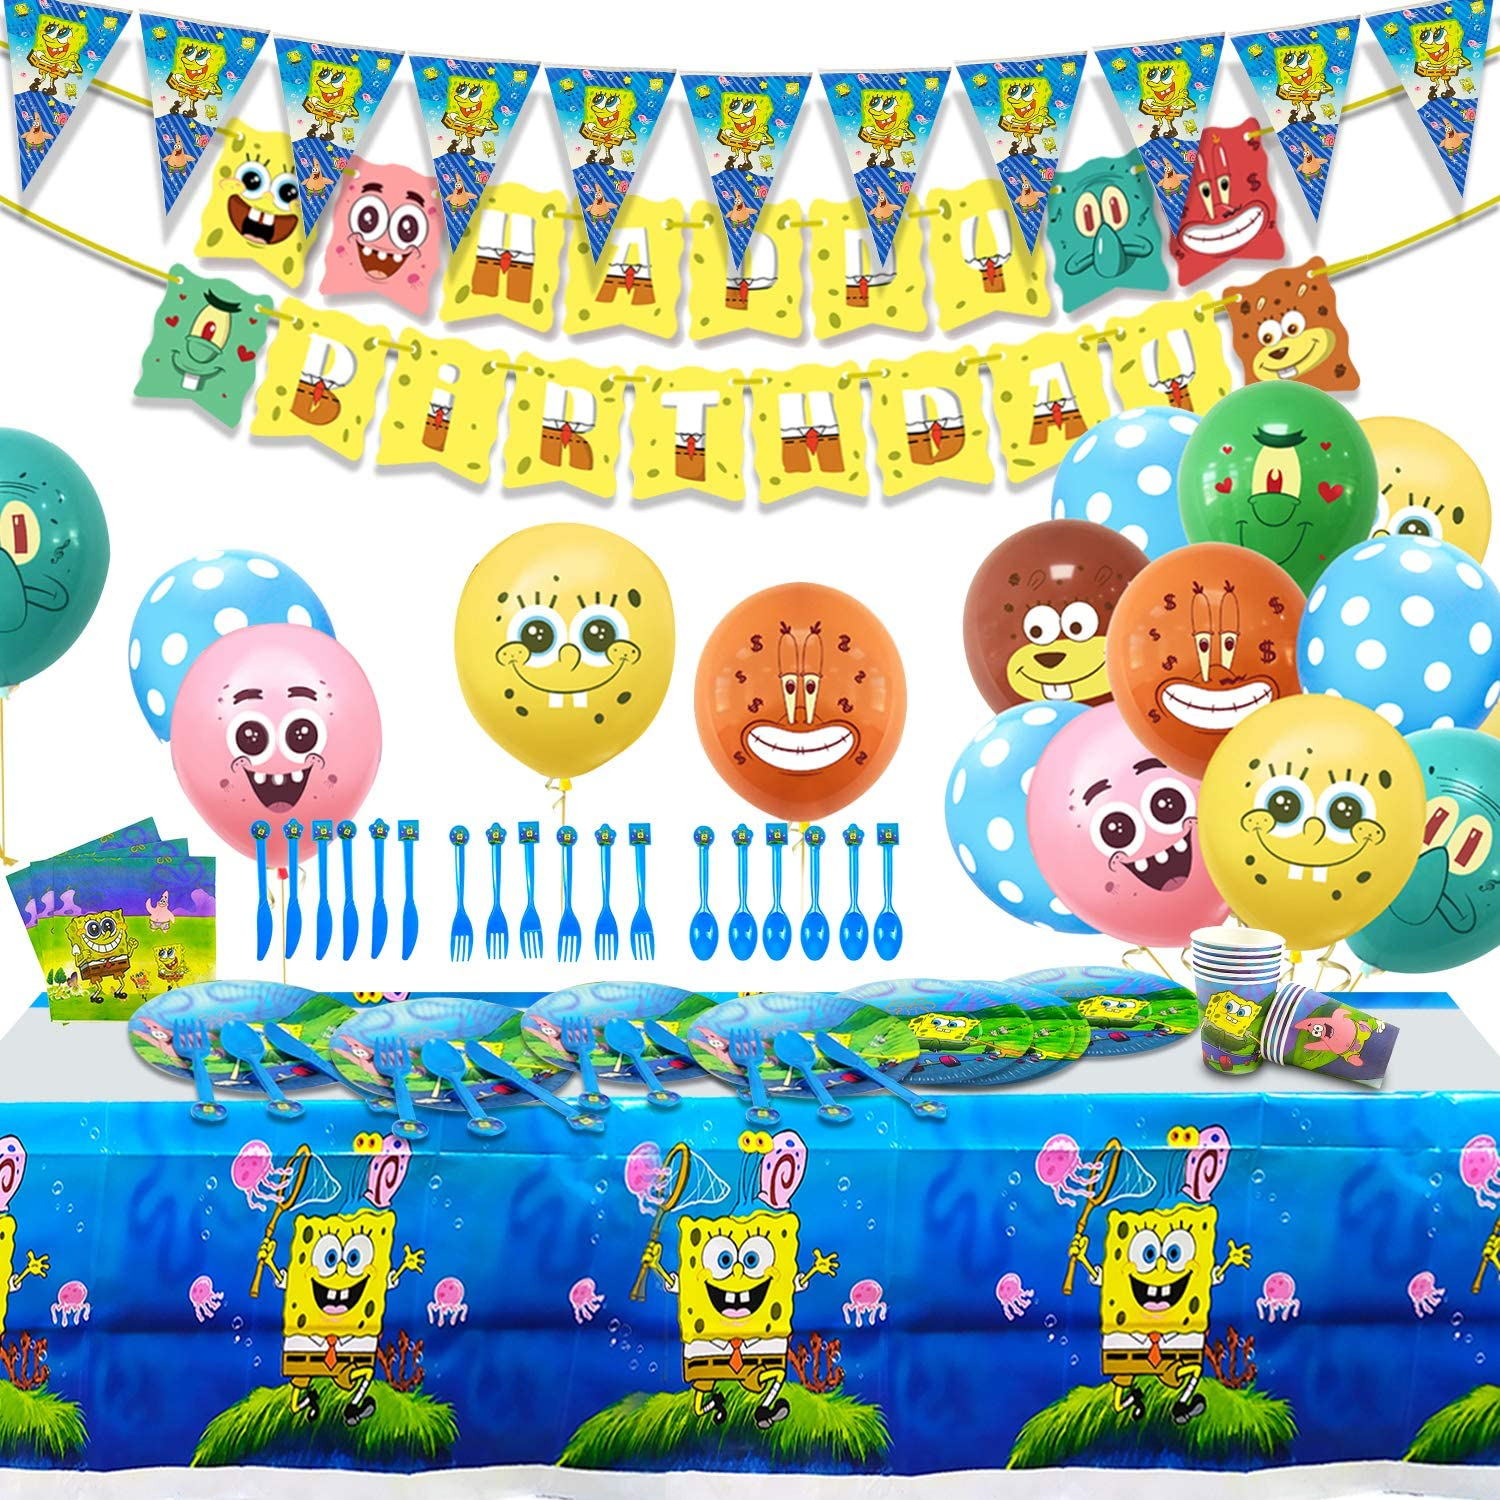 Spongebob Party Supplies 102 pcs Birthday Decorations for 10 Guest, Happy Birthday Banner,Birthday Party Balloons, Tablecover,Plates, Balloons